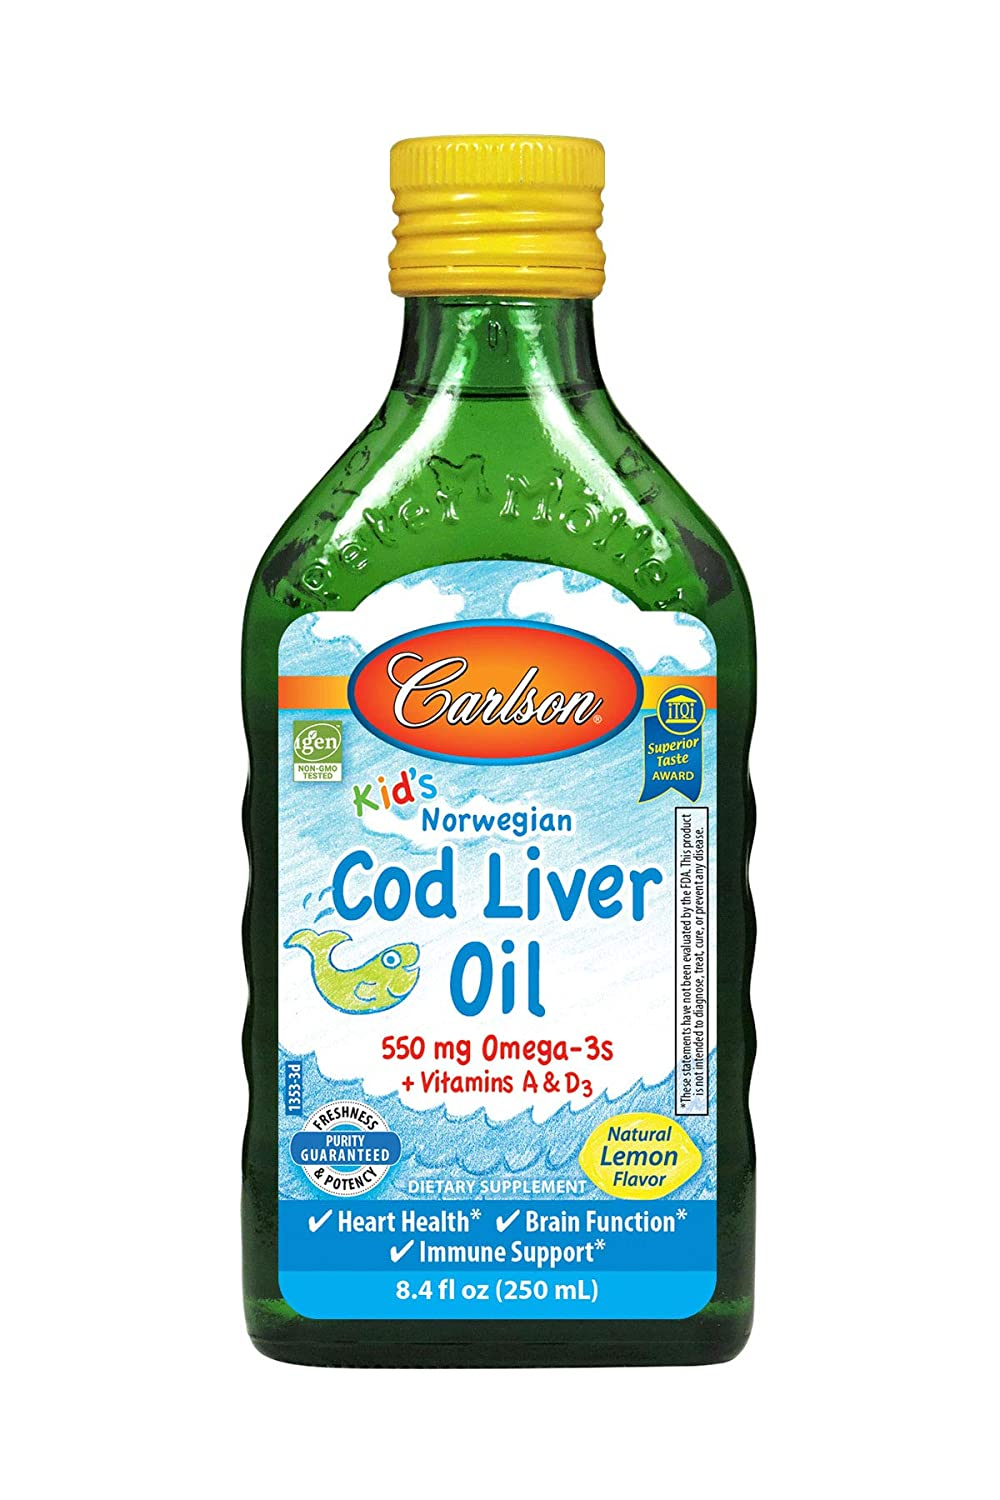 Carlson - Kid's Cod Liver Oil, 550 mg Omega-3s, Vitamins A & D3, Wild Norwegian, Lemon, 250 ml